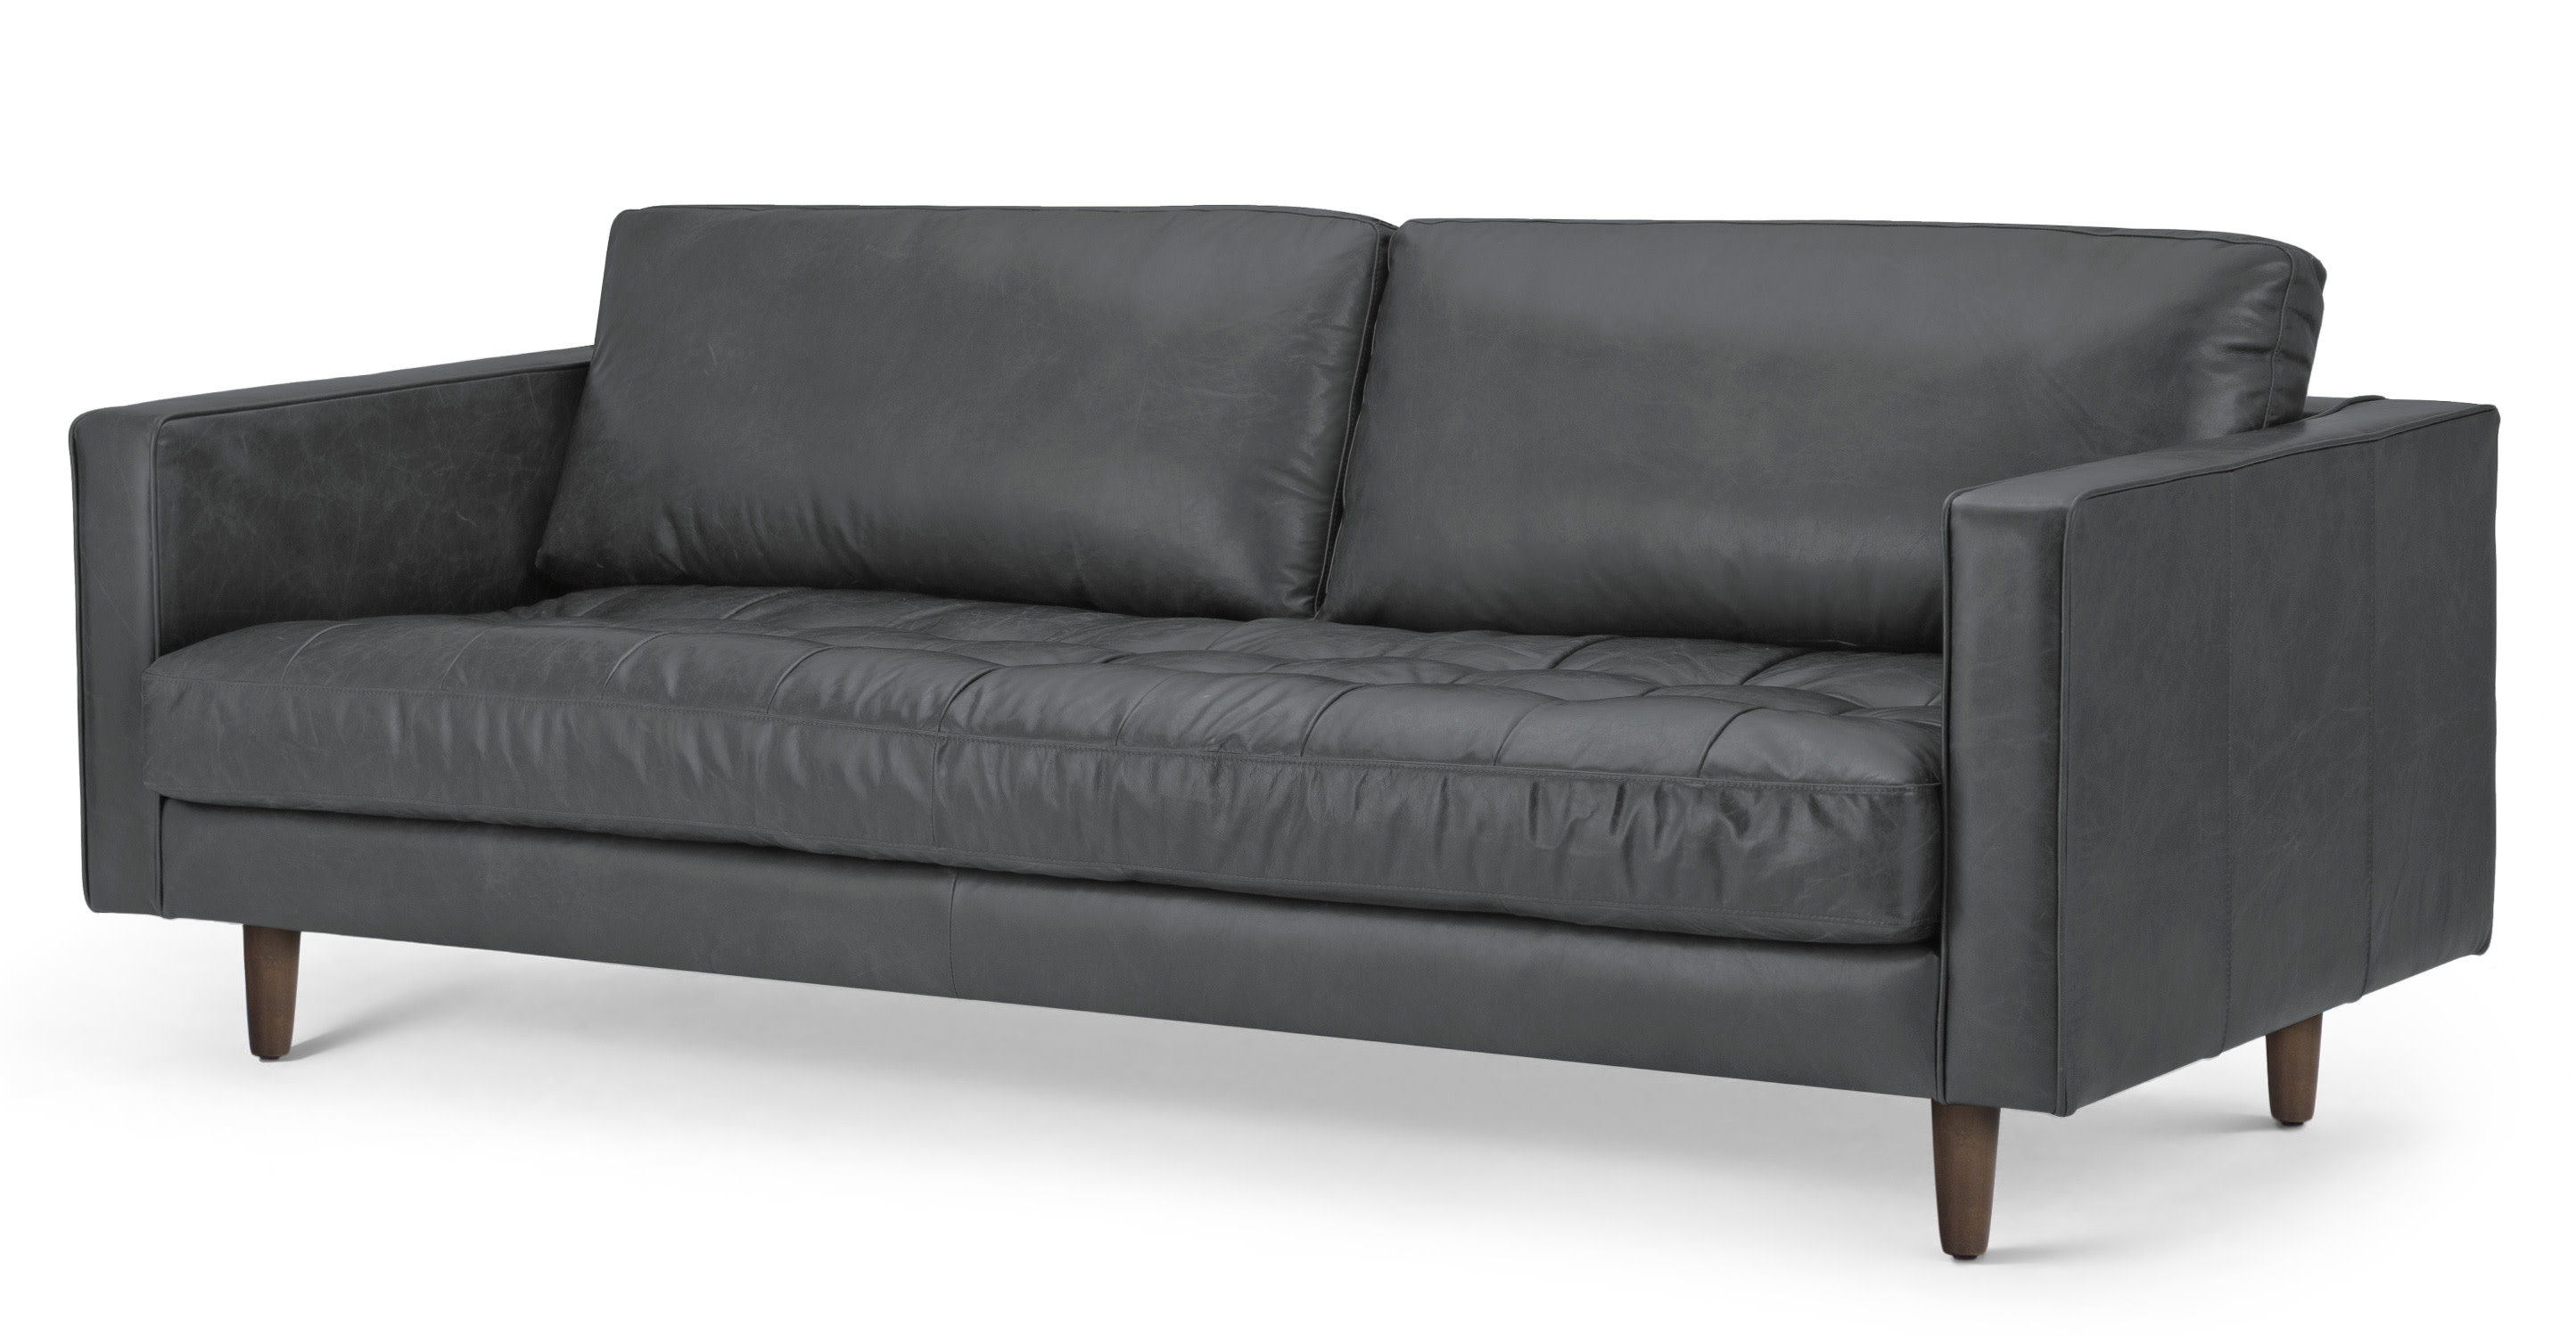 scott 3 seater sofa oxford grey premium leather. Black Bedroom Furniture Sets. Home Design Ideas